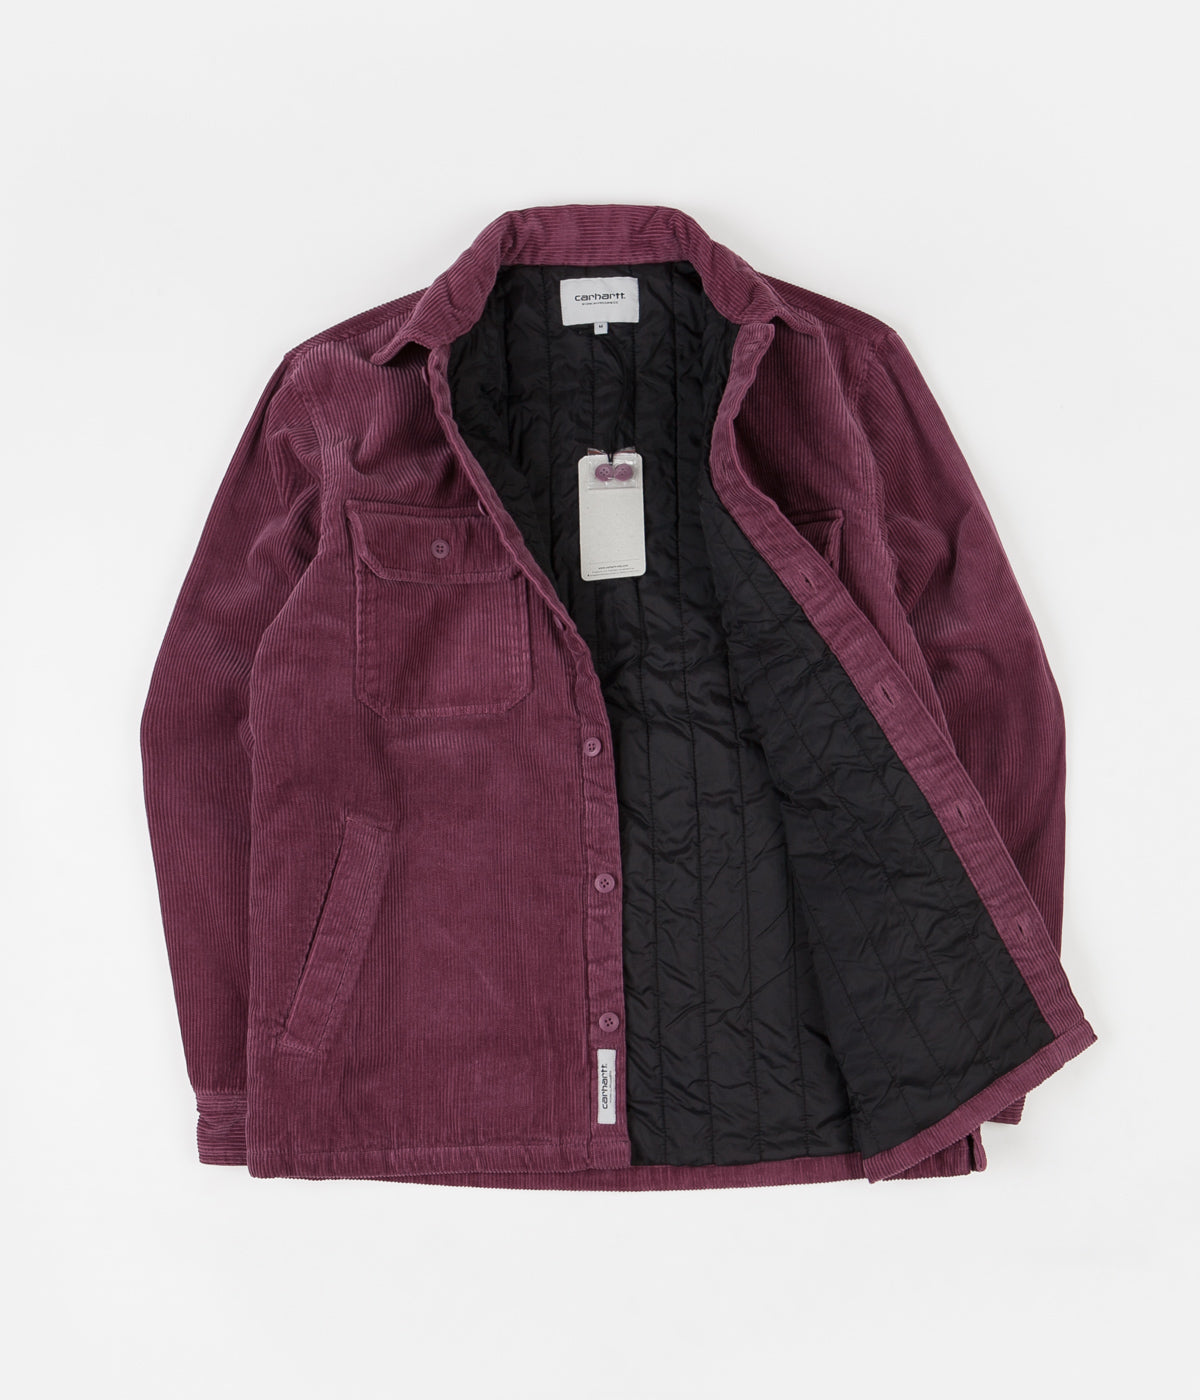 Carhartt Whitsome Shirt Jacket - Dusty Fuchsia